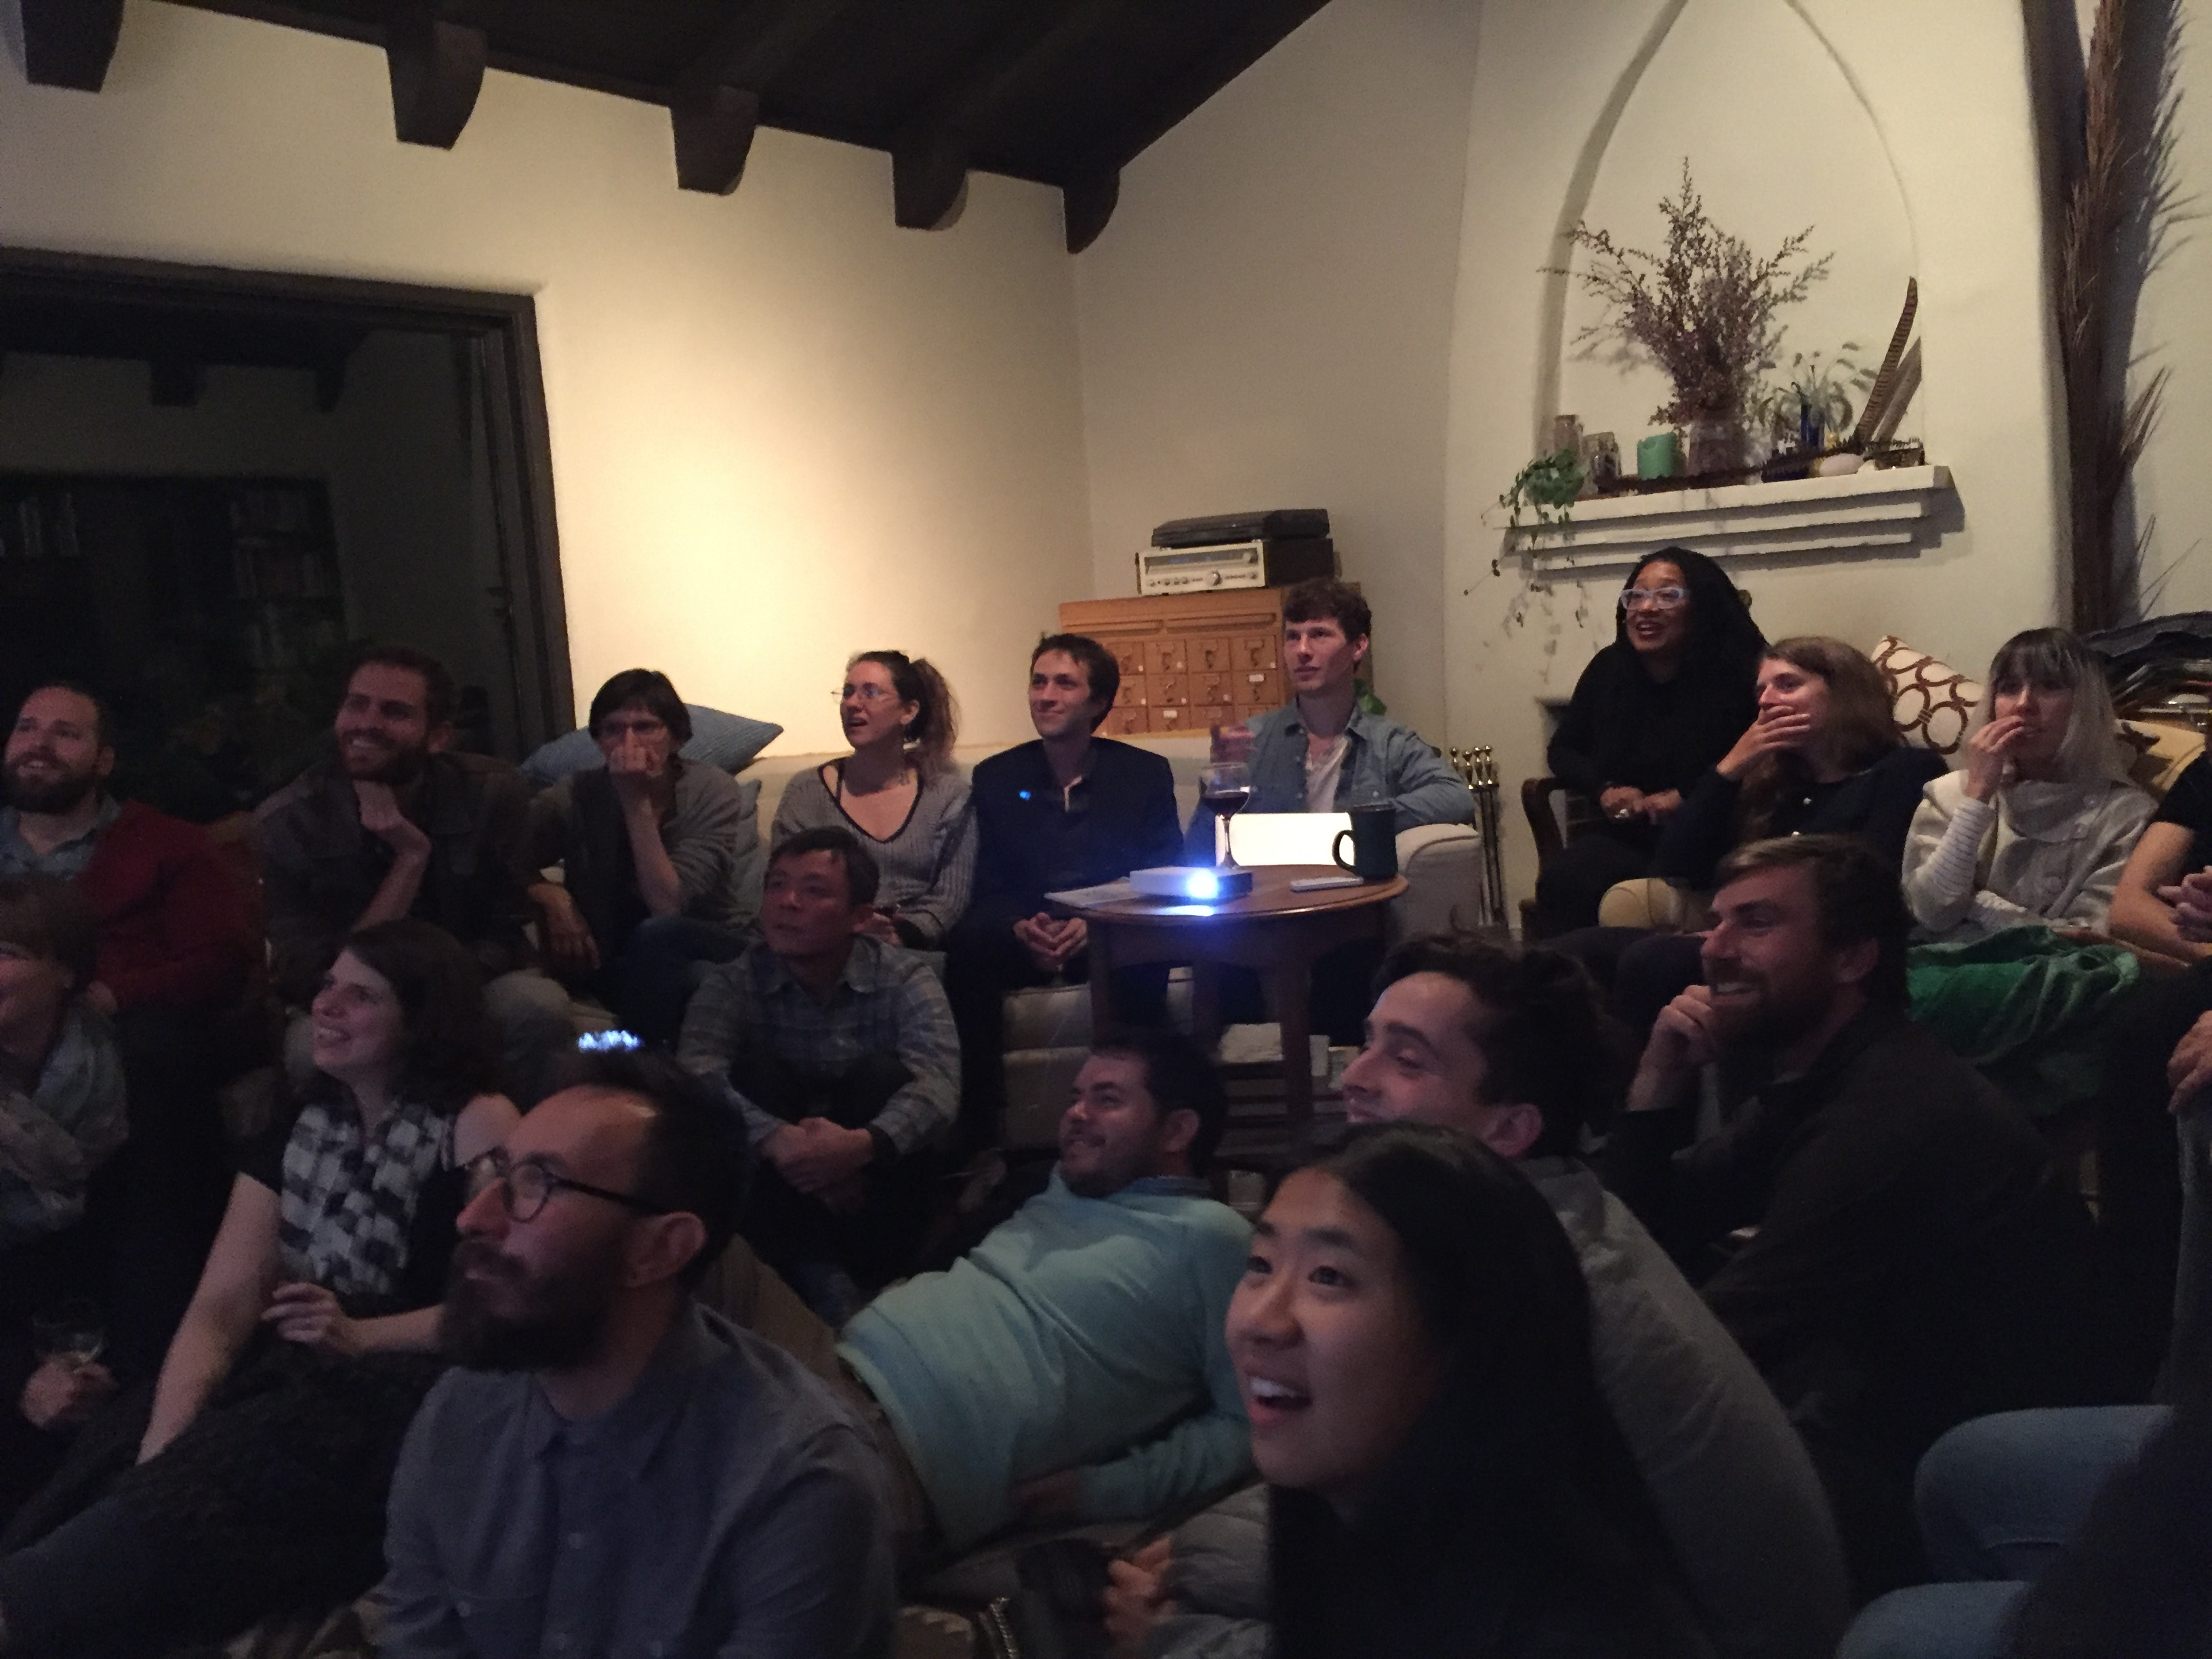 Writer and artist Joe Veix presentation, Rose Linke's living room, Oakland, 11/17/15. Photo Credit: Liat Berdugo